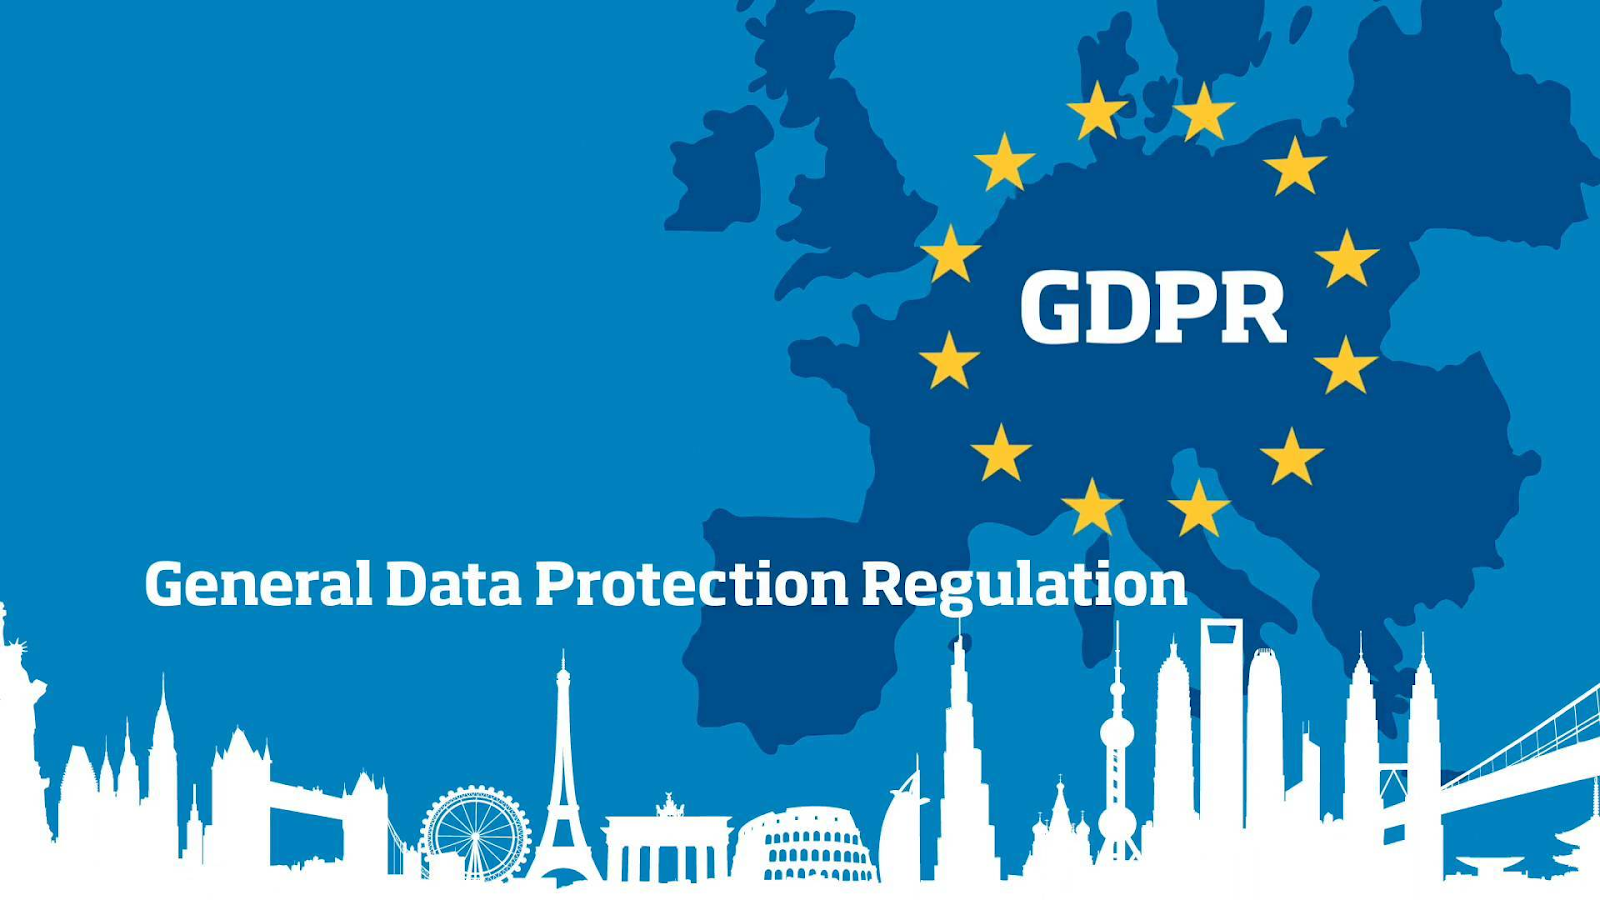 The Final Countdown Has Begun – Are You Ready for GDPR?